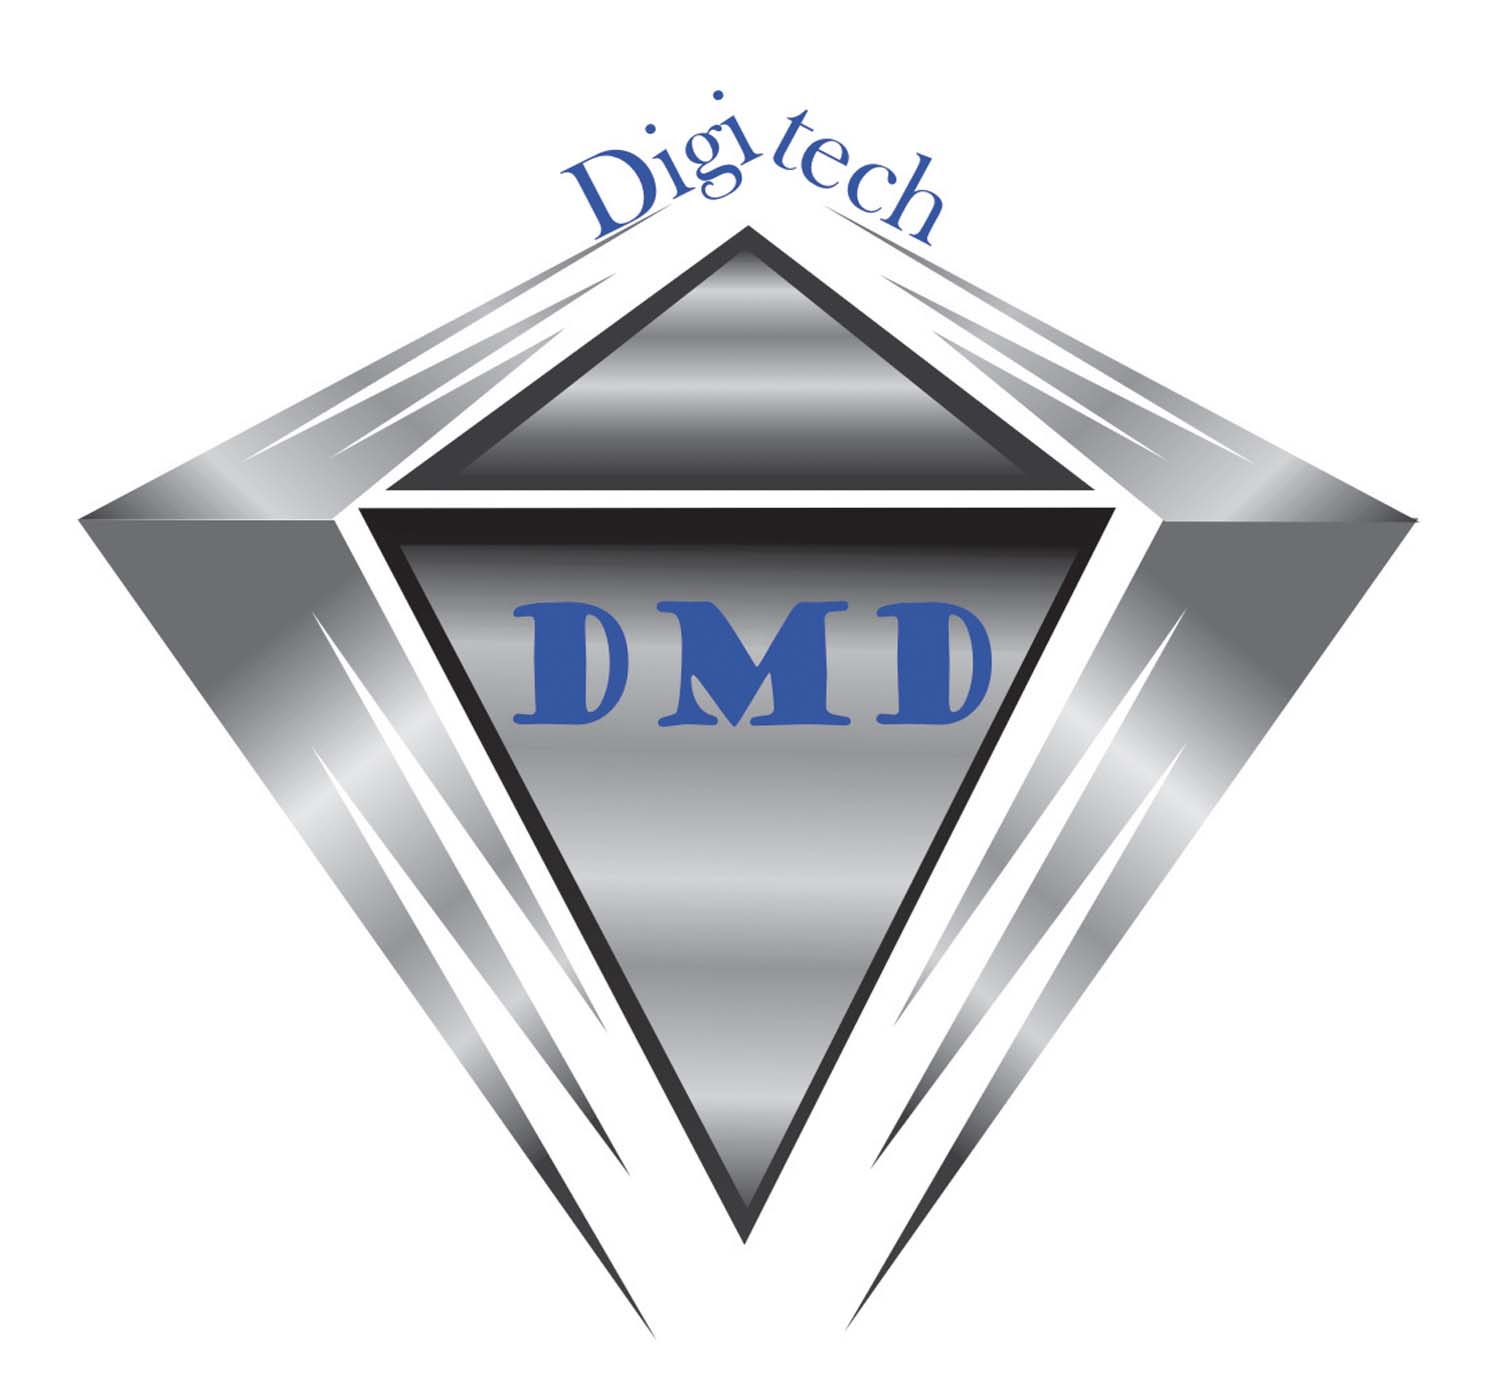 Digitechdmd The Technews and Gadget Review site